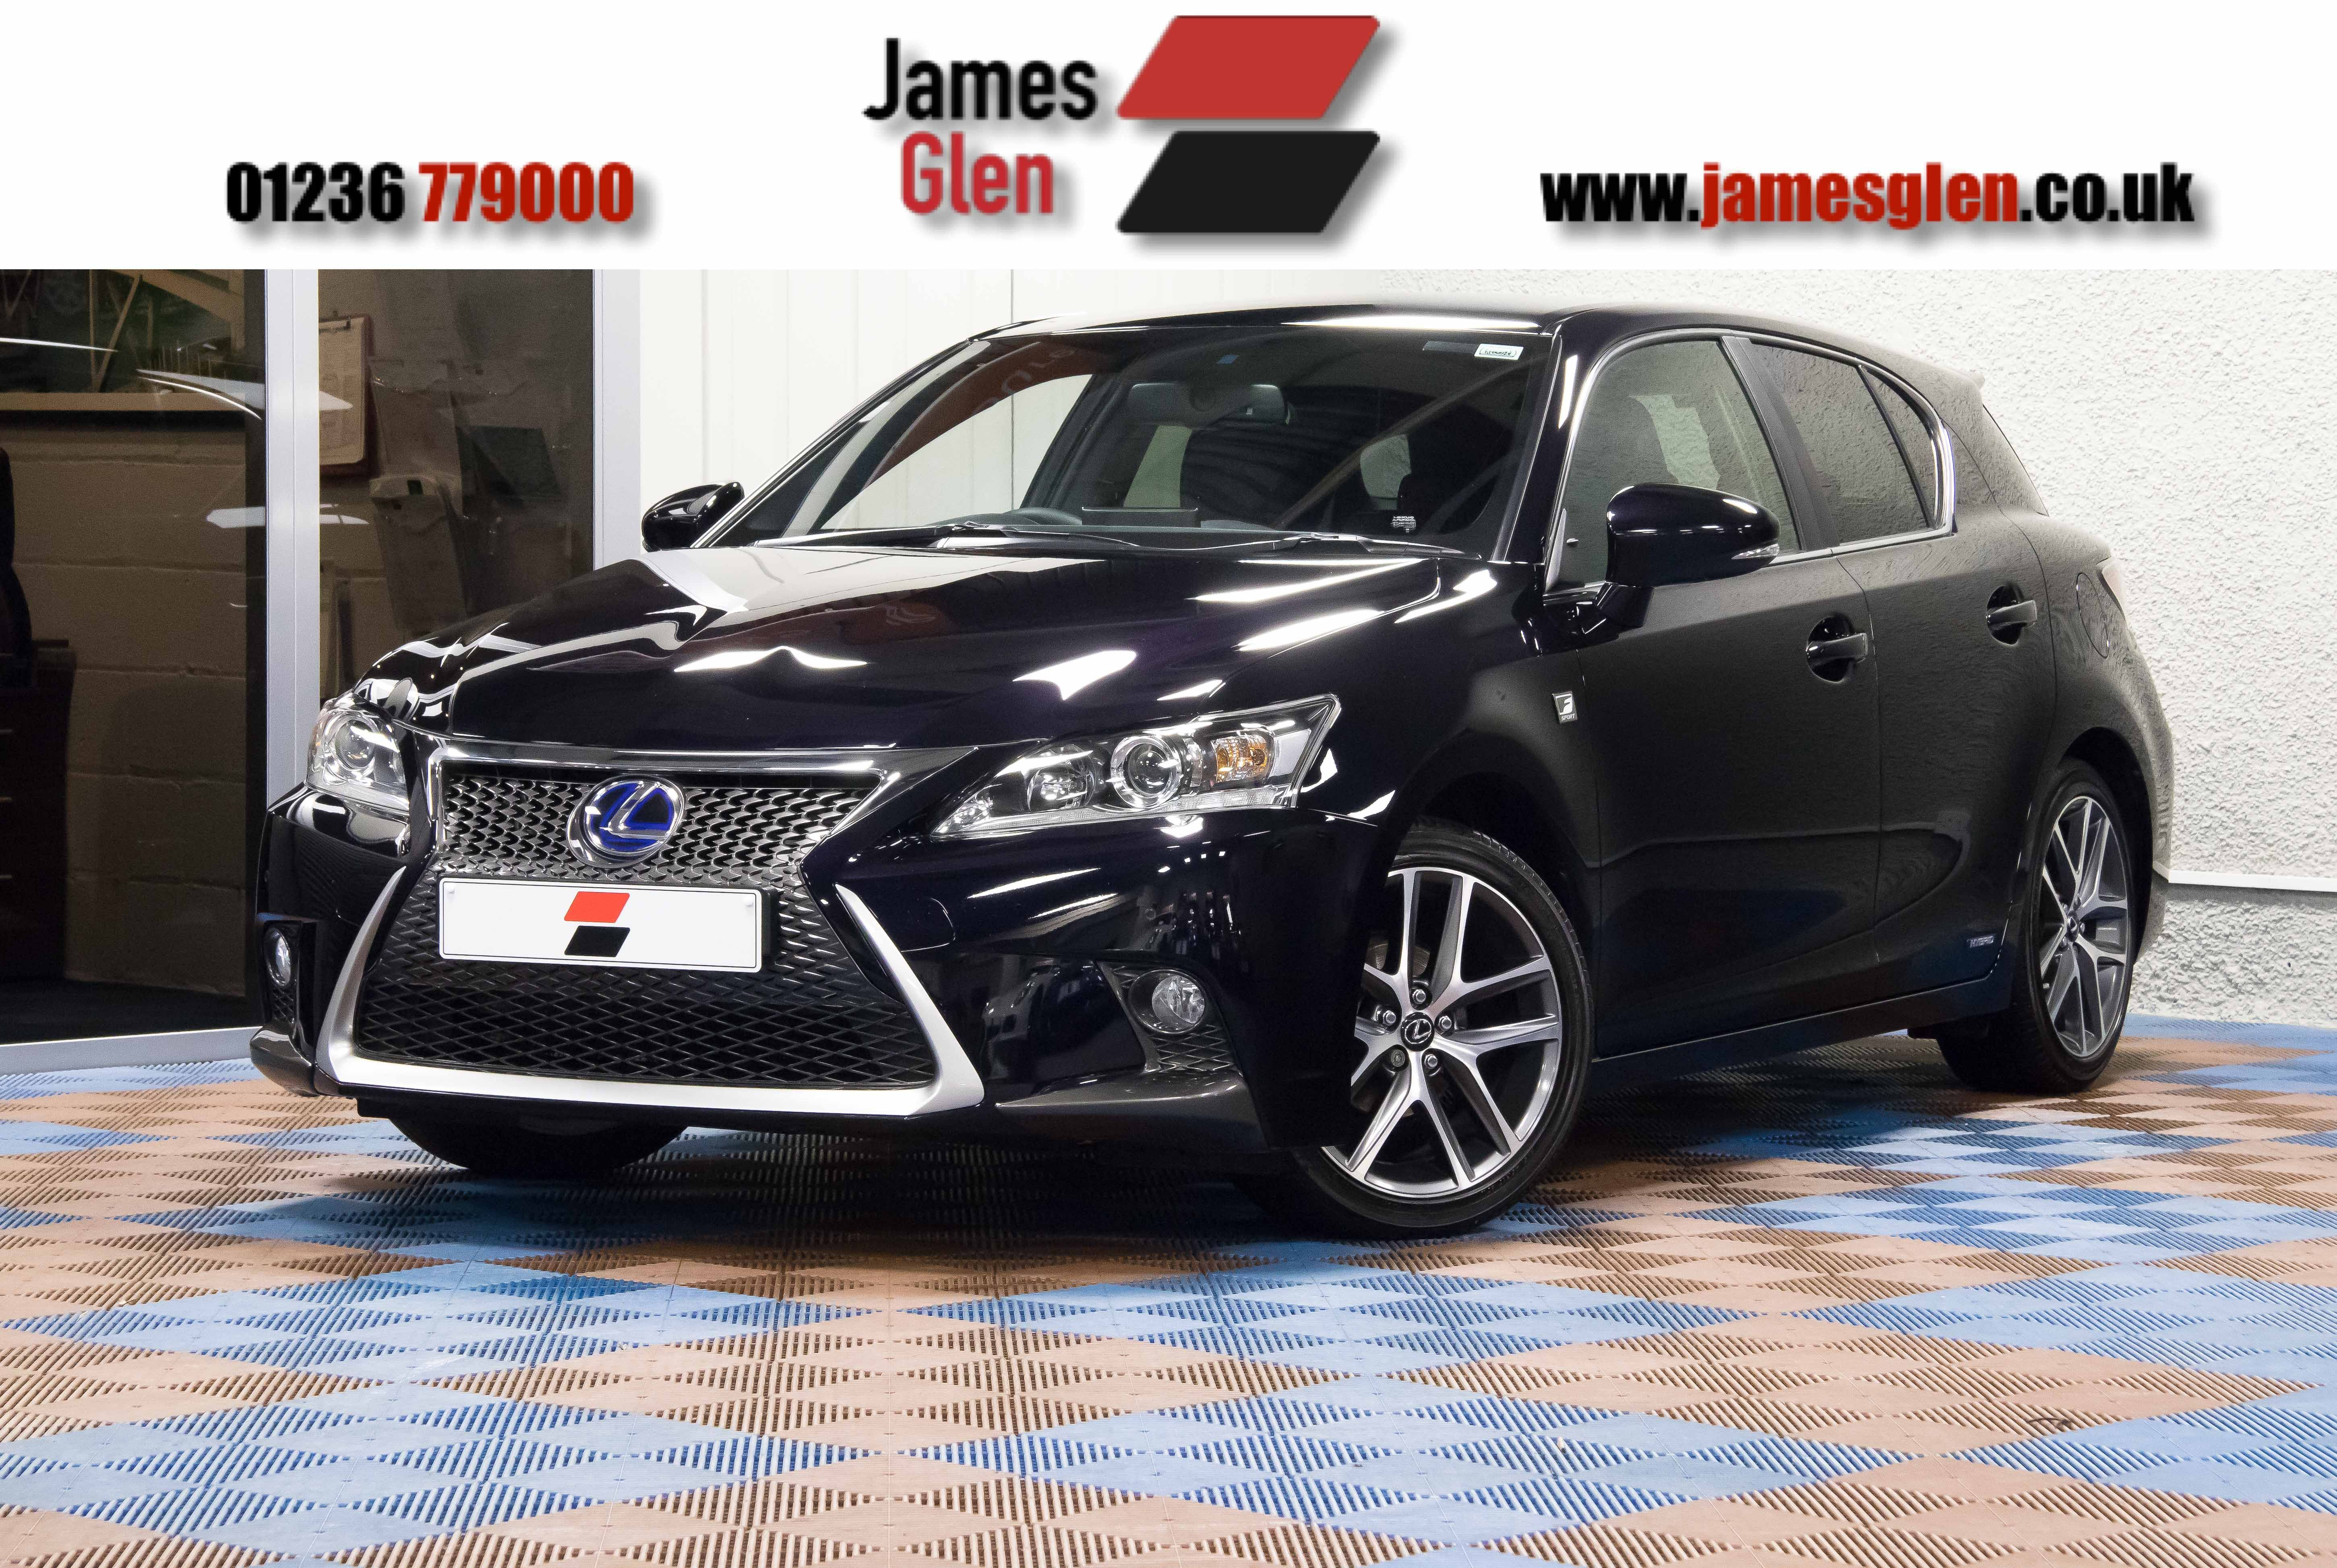 2016 Lexus CT200h, 16,000 Miles Cars For Sale Used